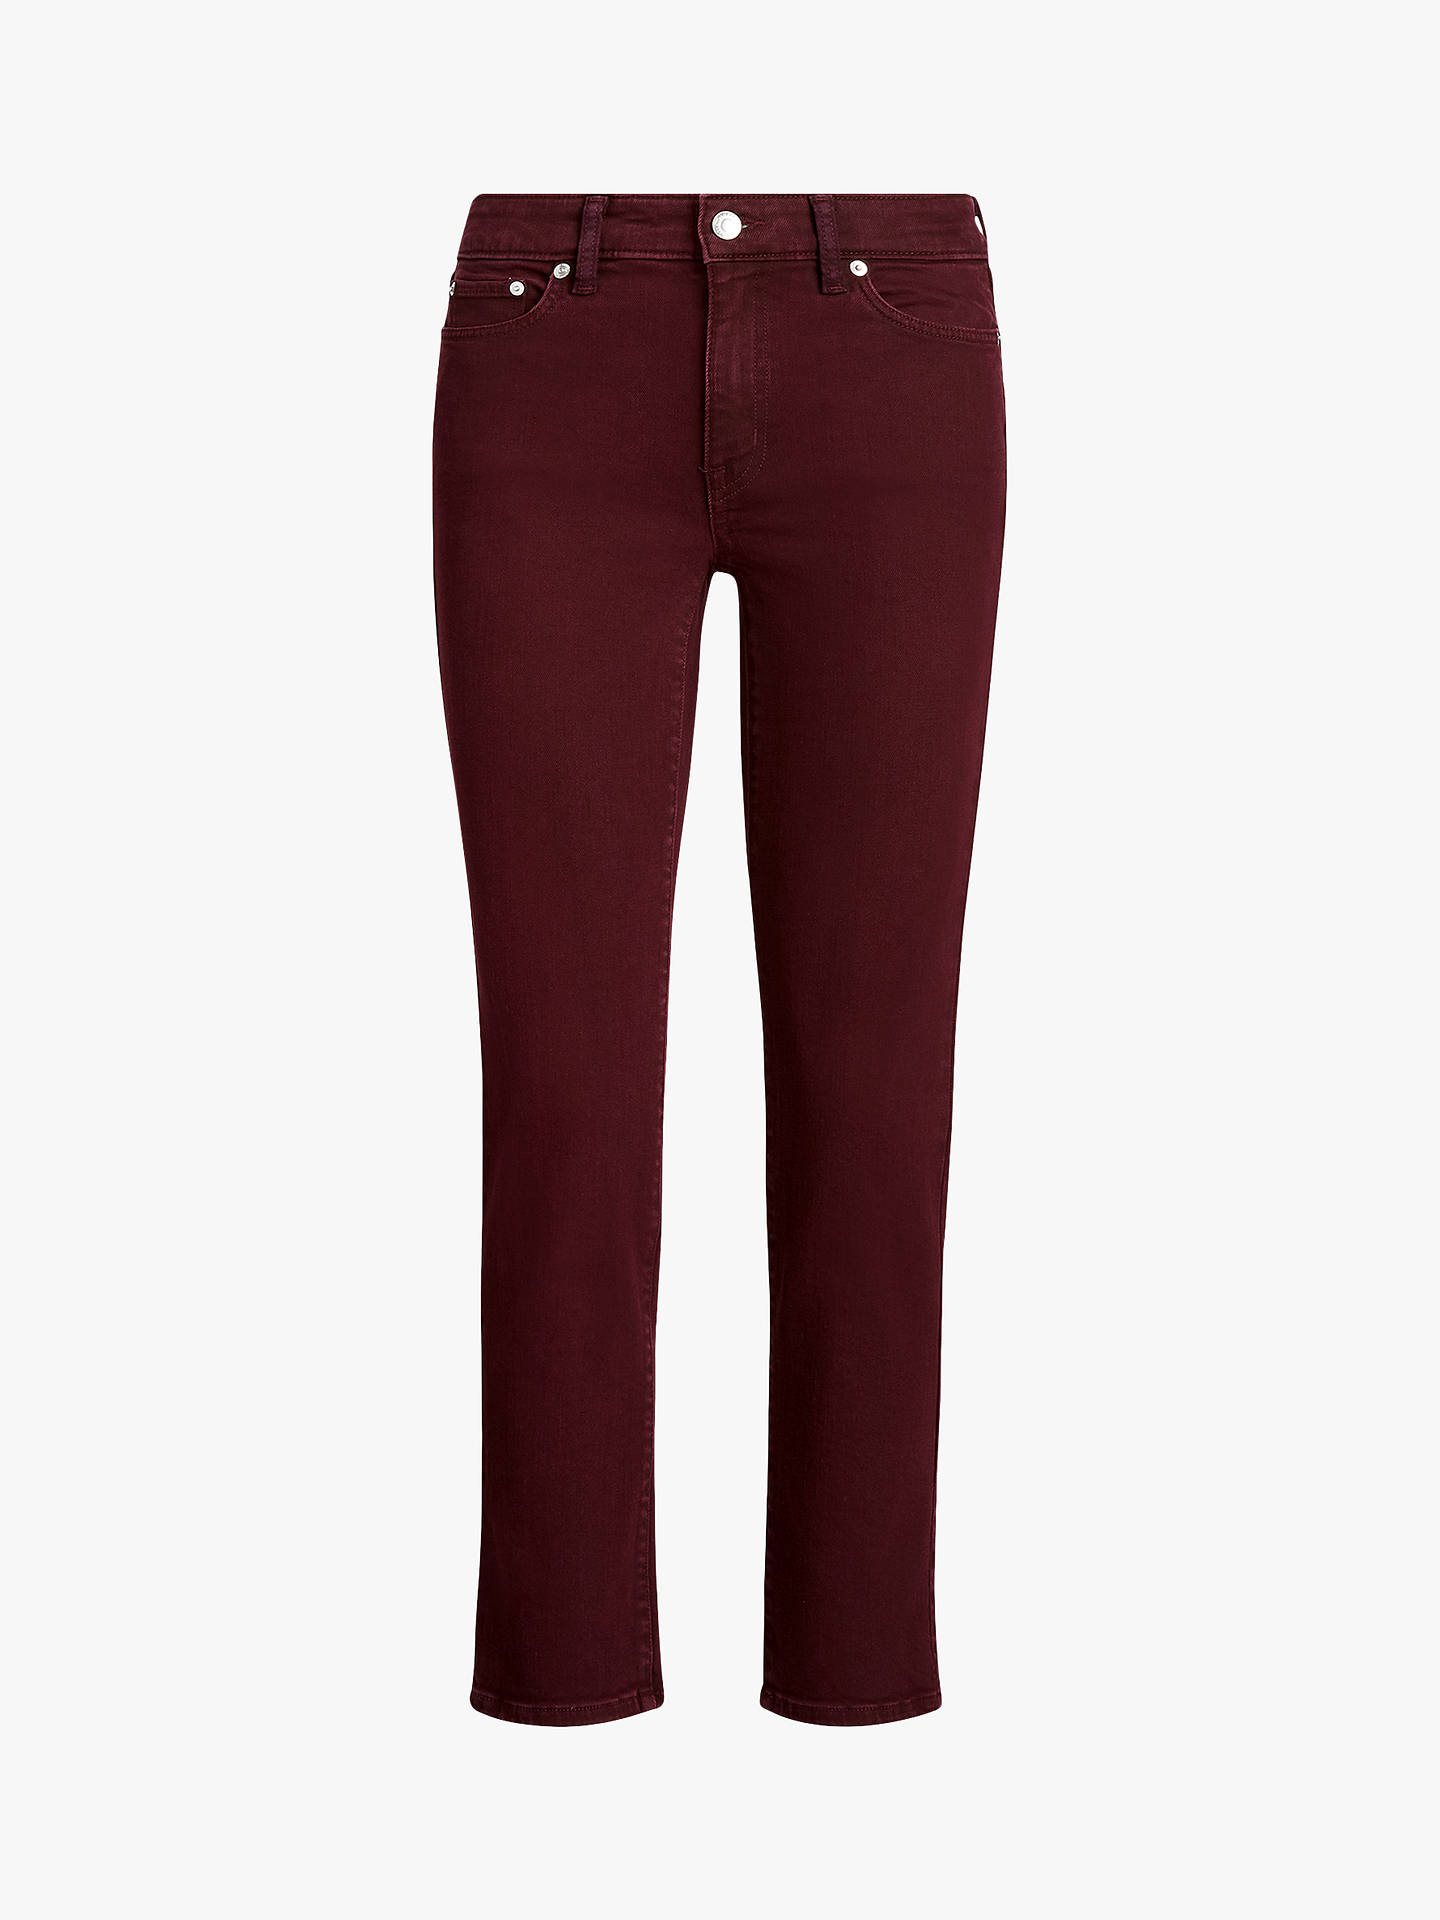 Buy Lauren Ralph Lauren Premier Straight Leg Ankle Jeans, Pinot Noir Wash, 6 Online at johnlewis.com